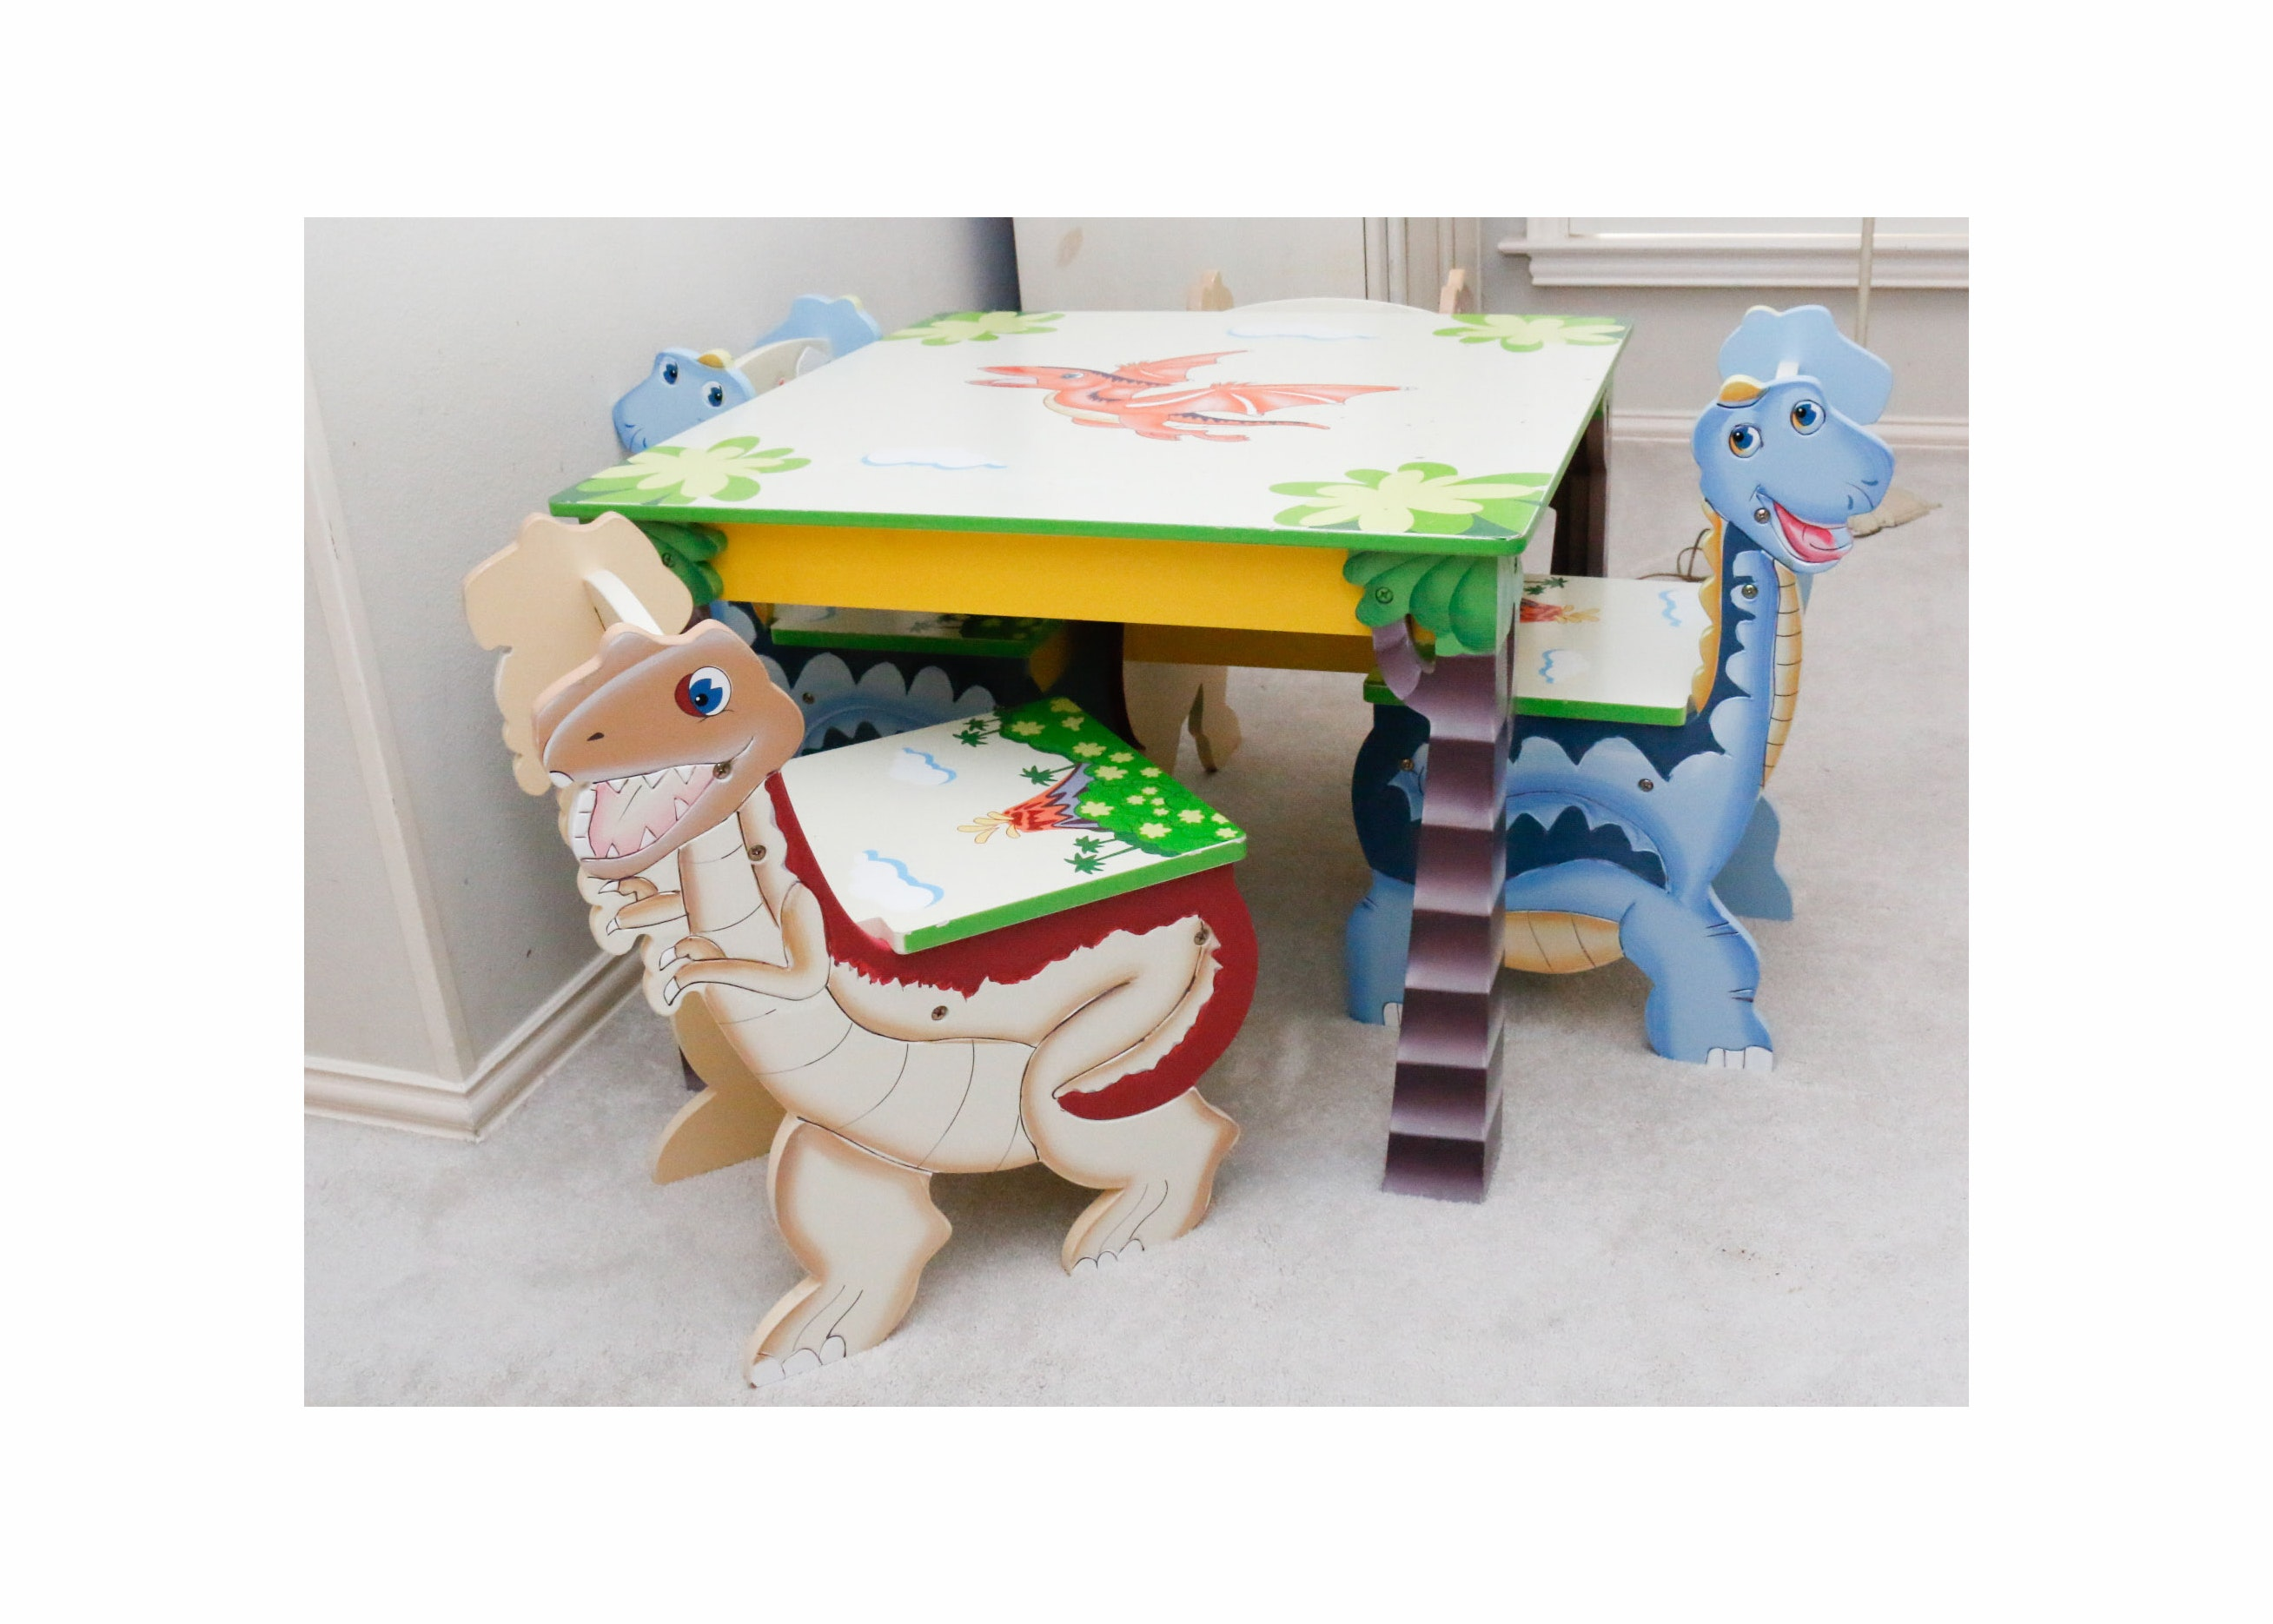 Childu0027s Dinosaur Table and Chair Set ...  sc 1 st  EBTH.com & Childu0027s Dinosaur Table and Chair Set : EBTH